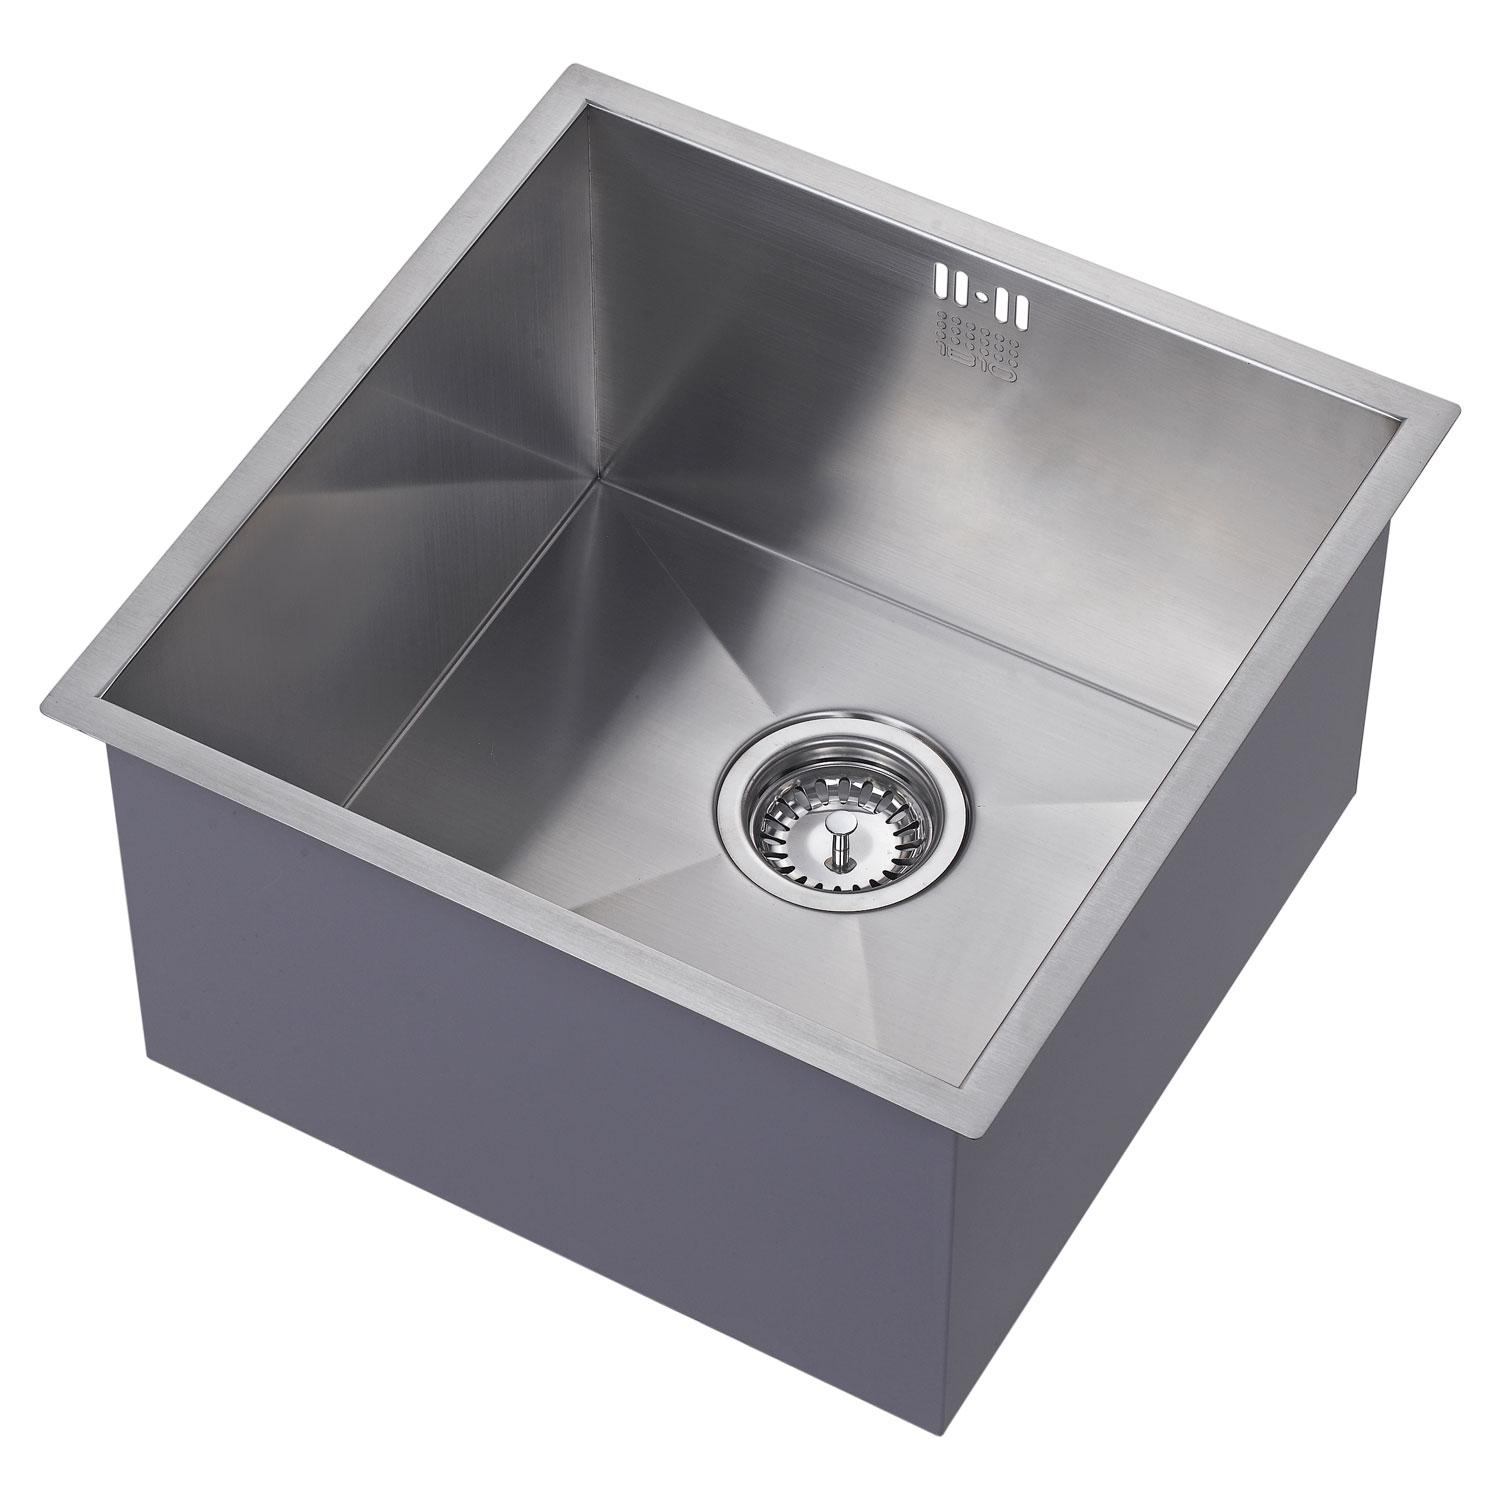 The 1810 Company Zenuno 400U Deep 1.0 Bowl Kitchen Sink - Stainless Steel-0